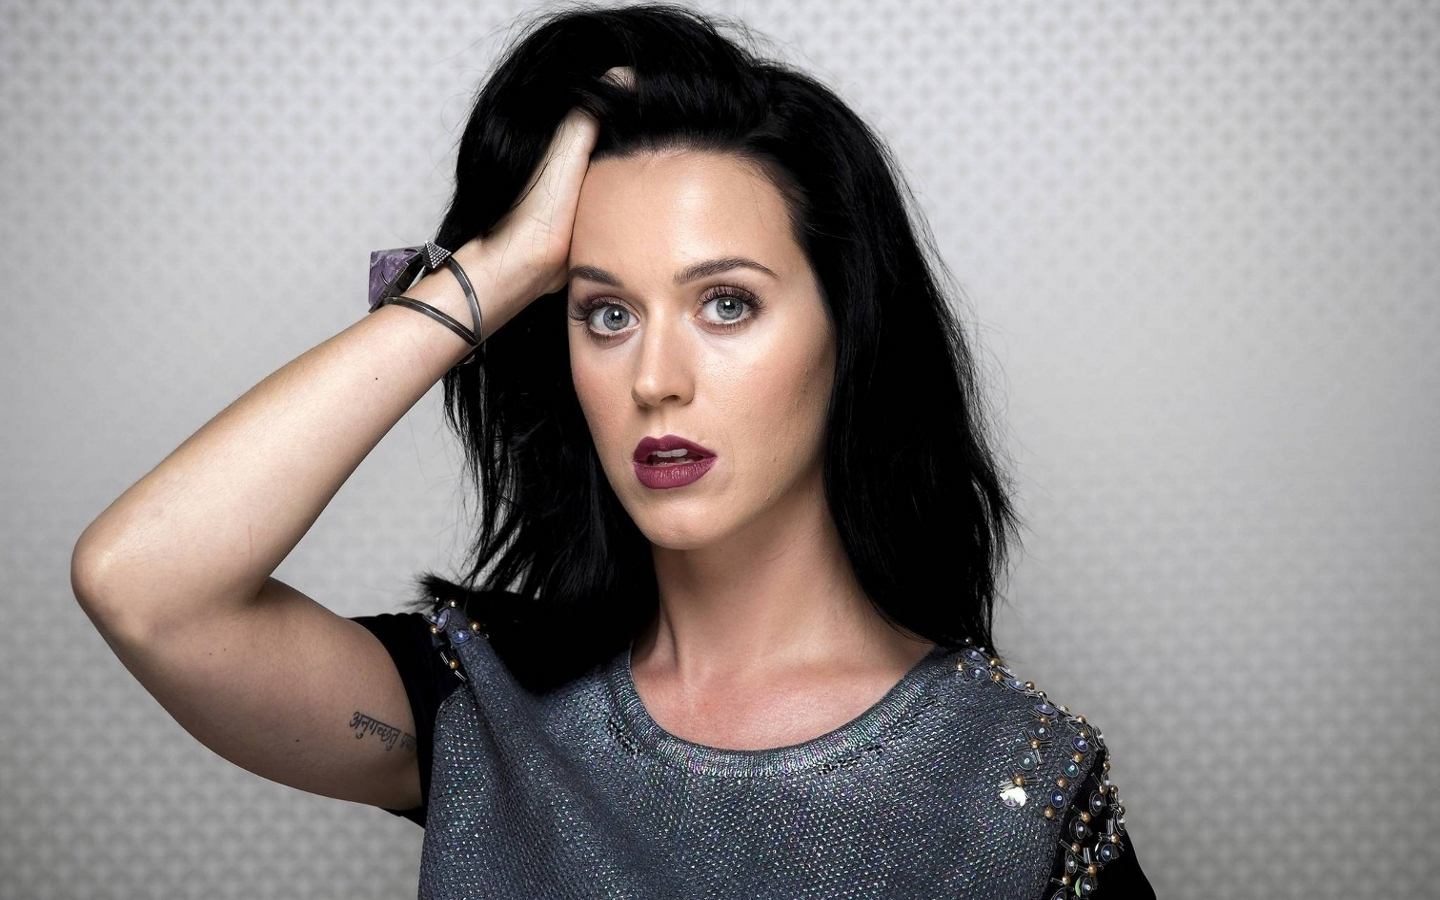 Here we go with the Katy Perry pregnancy rumors again… Except, this time, I can totally see why people think Katy is going to be a mommy.